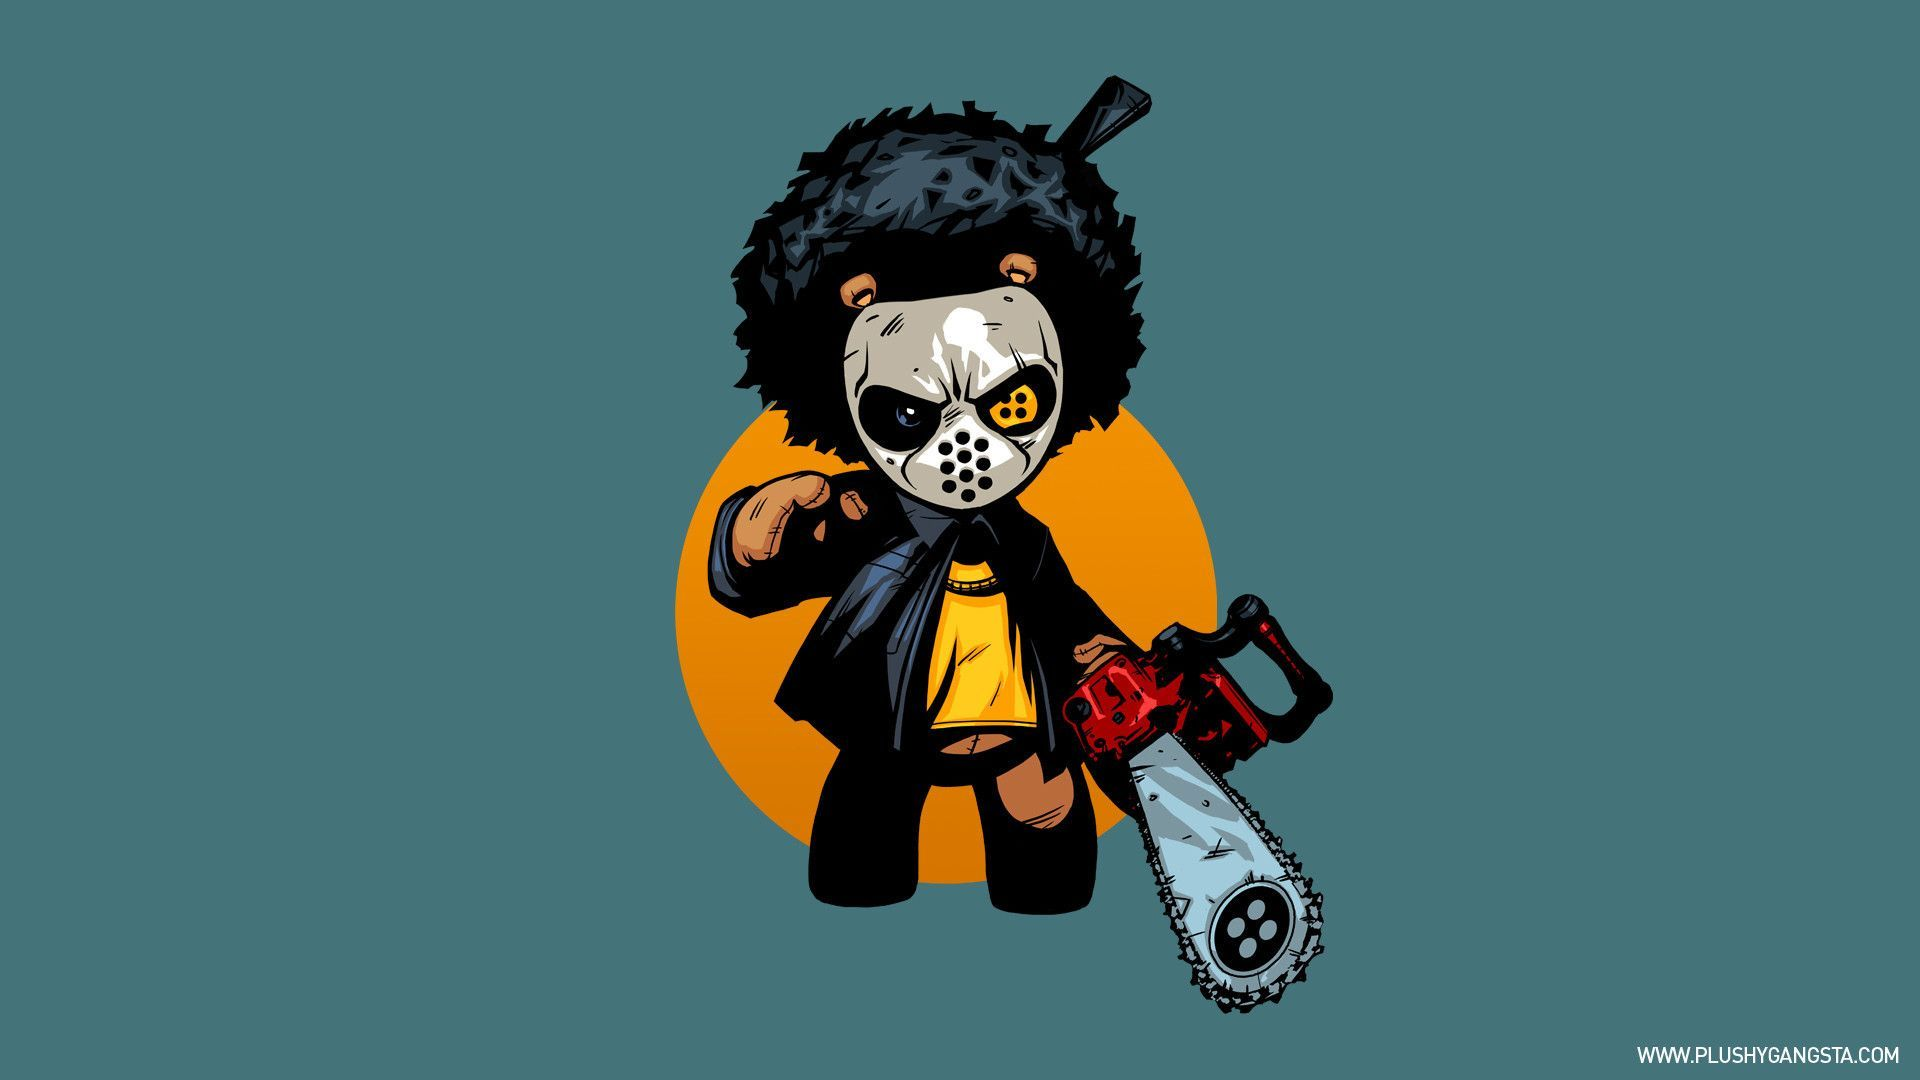 Gangster Cartoon Wallpapers Top Free Gangster Cartoon